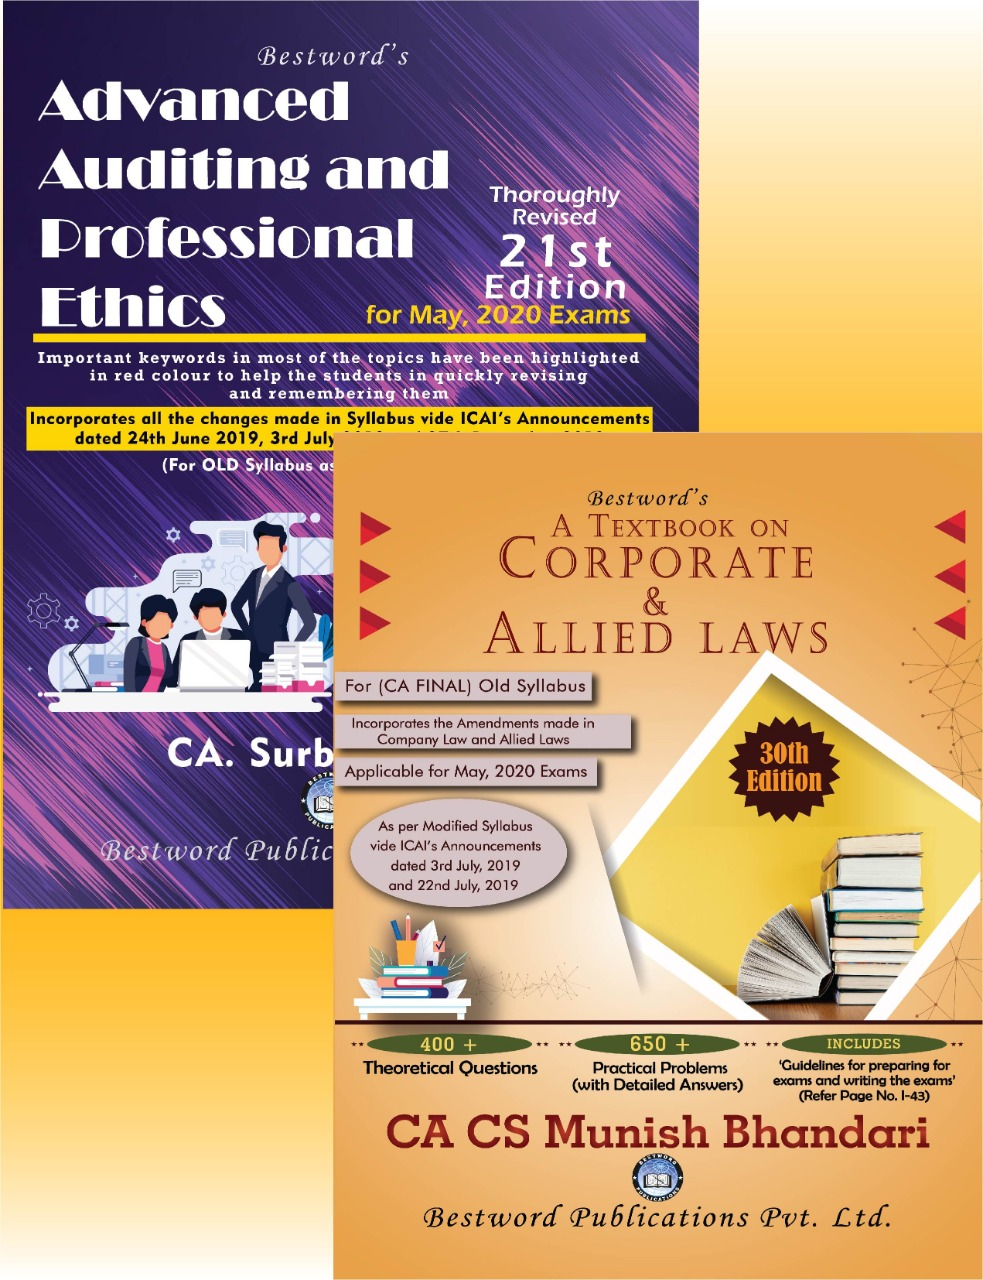 bestword's-combo-of-two-books---advanced-auditing-and-prof.-ethics---21st-edition-by-ca-surbhi-bansal-&-corporate-&-allied-laws---30th-edition-by-ca-cs-munish-bhandari---for-ca-(final)-may,-2020-exams-(old-syllabus)